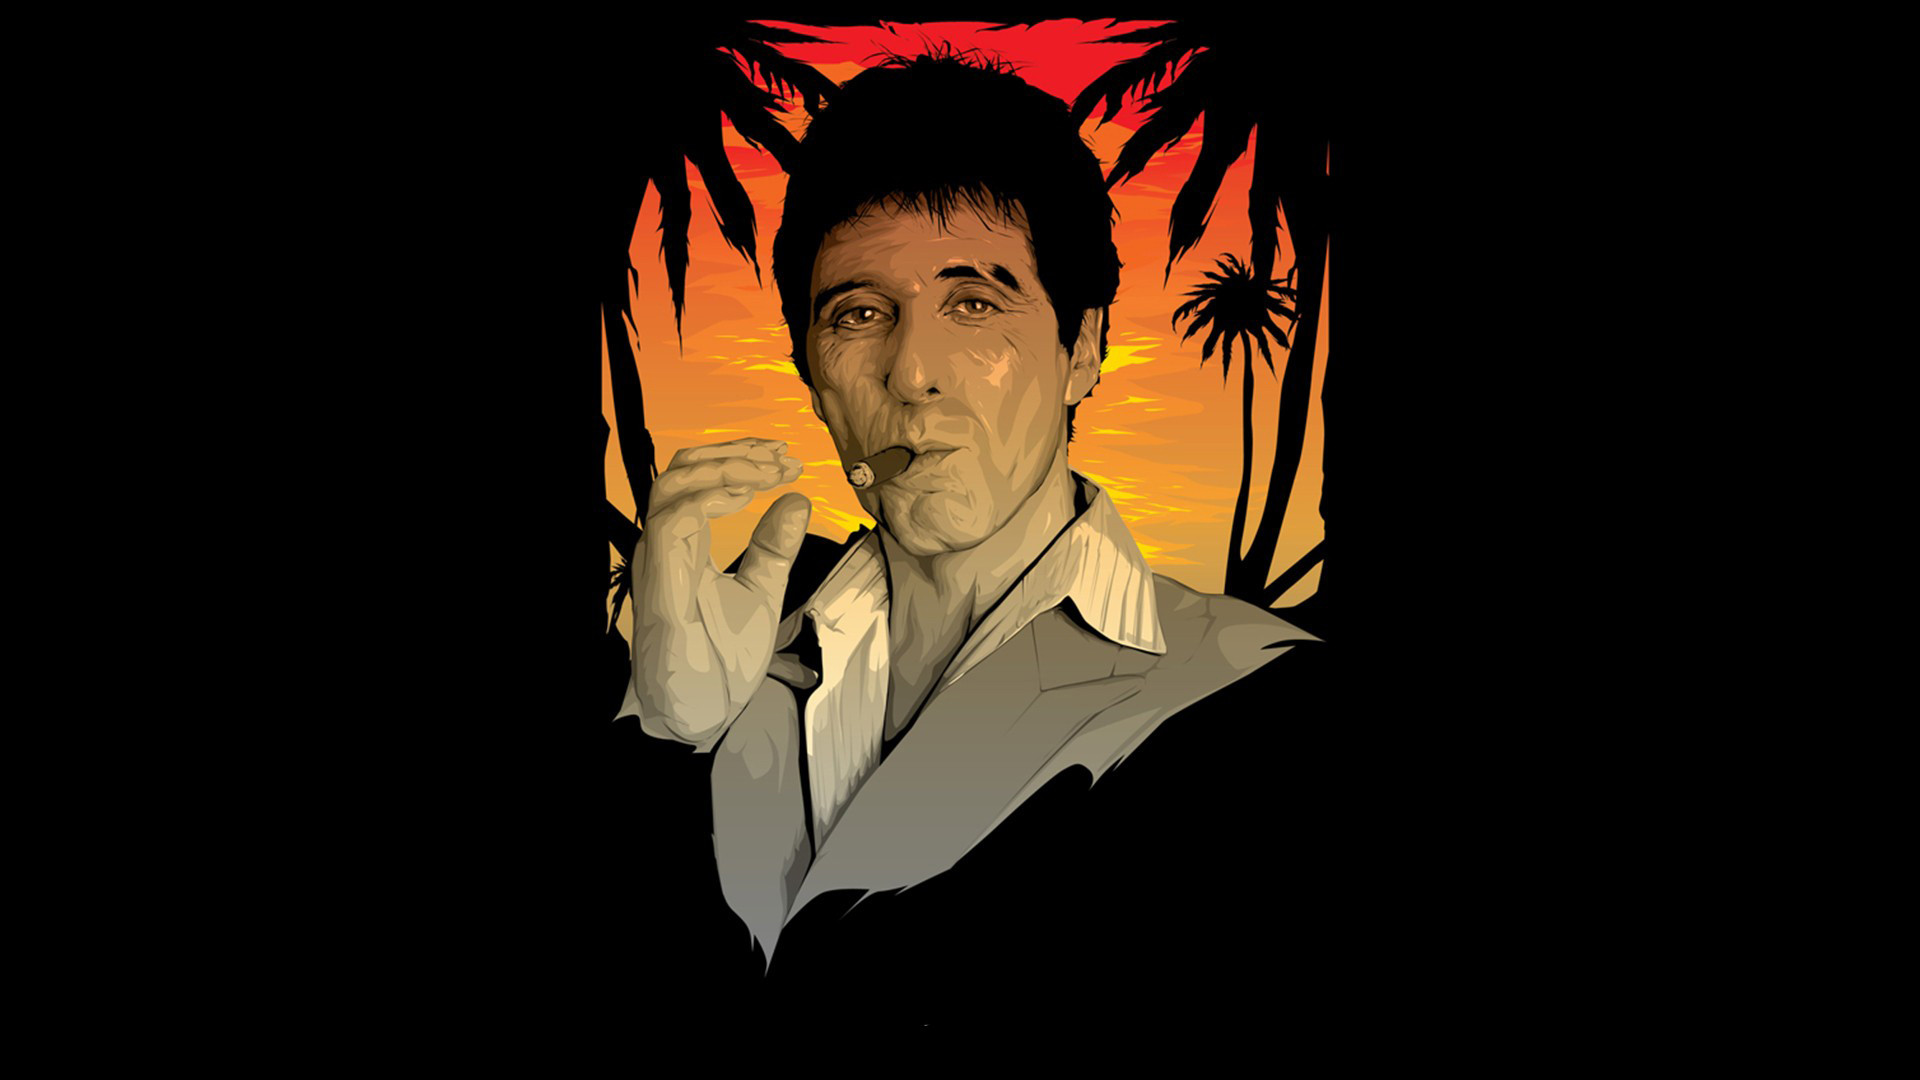 Scarface Full HD Wallpaper https://wallpapers-and-backgrounds.net/